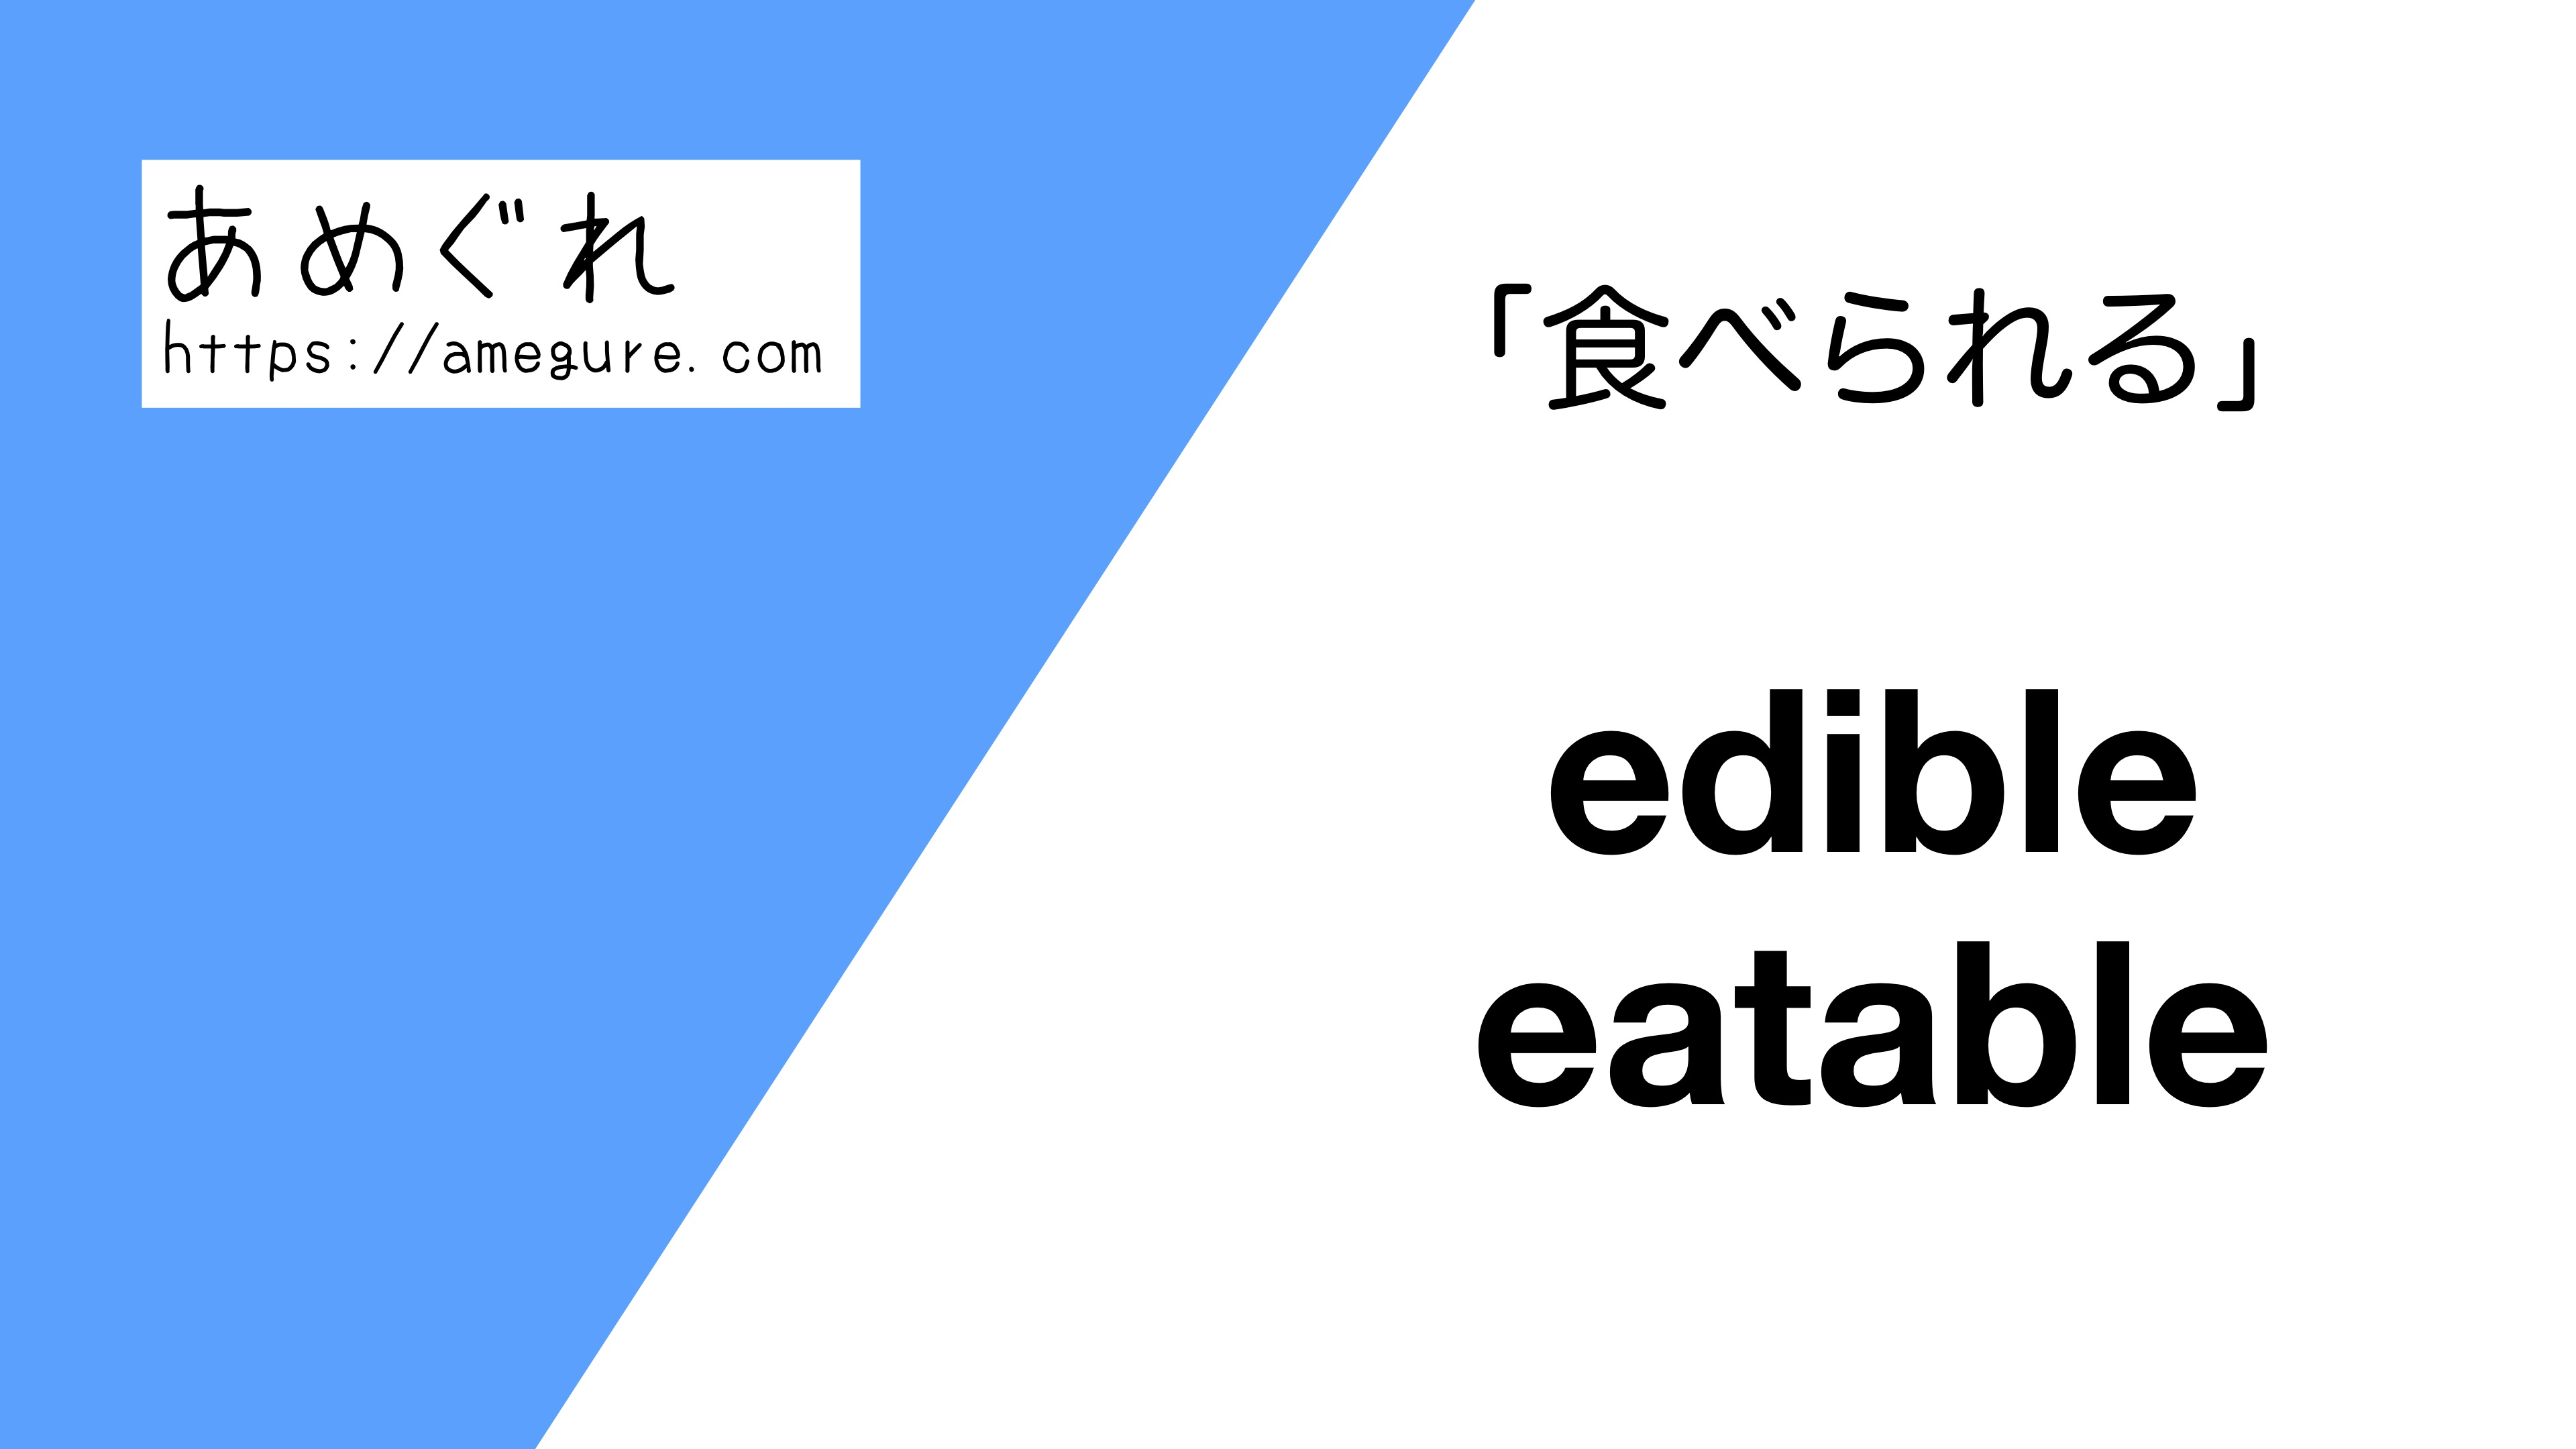 edible-eatable違い